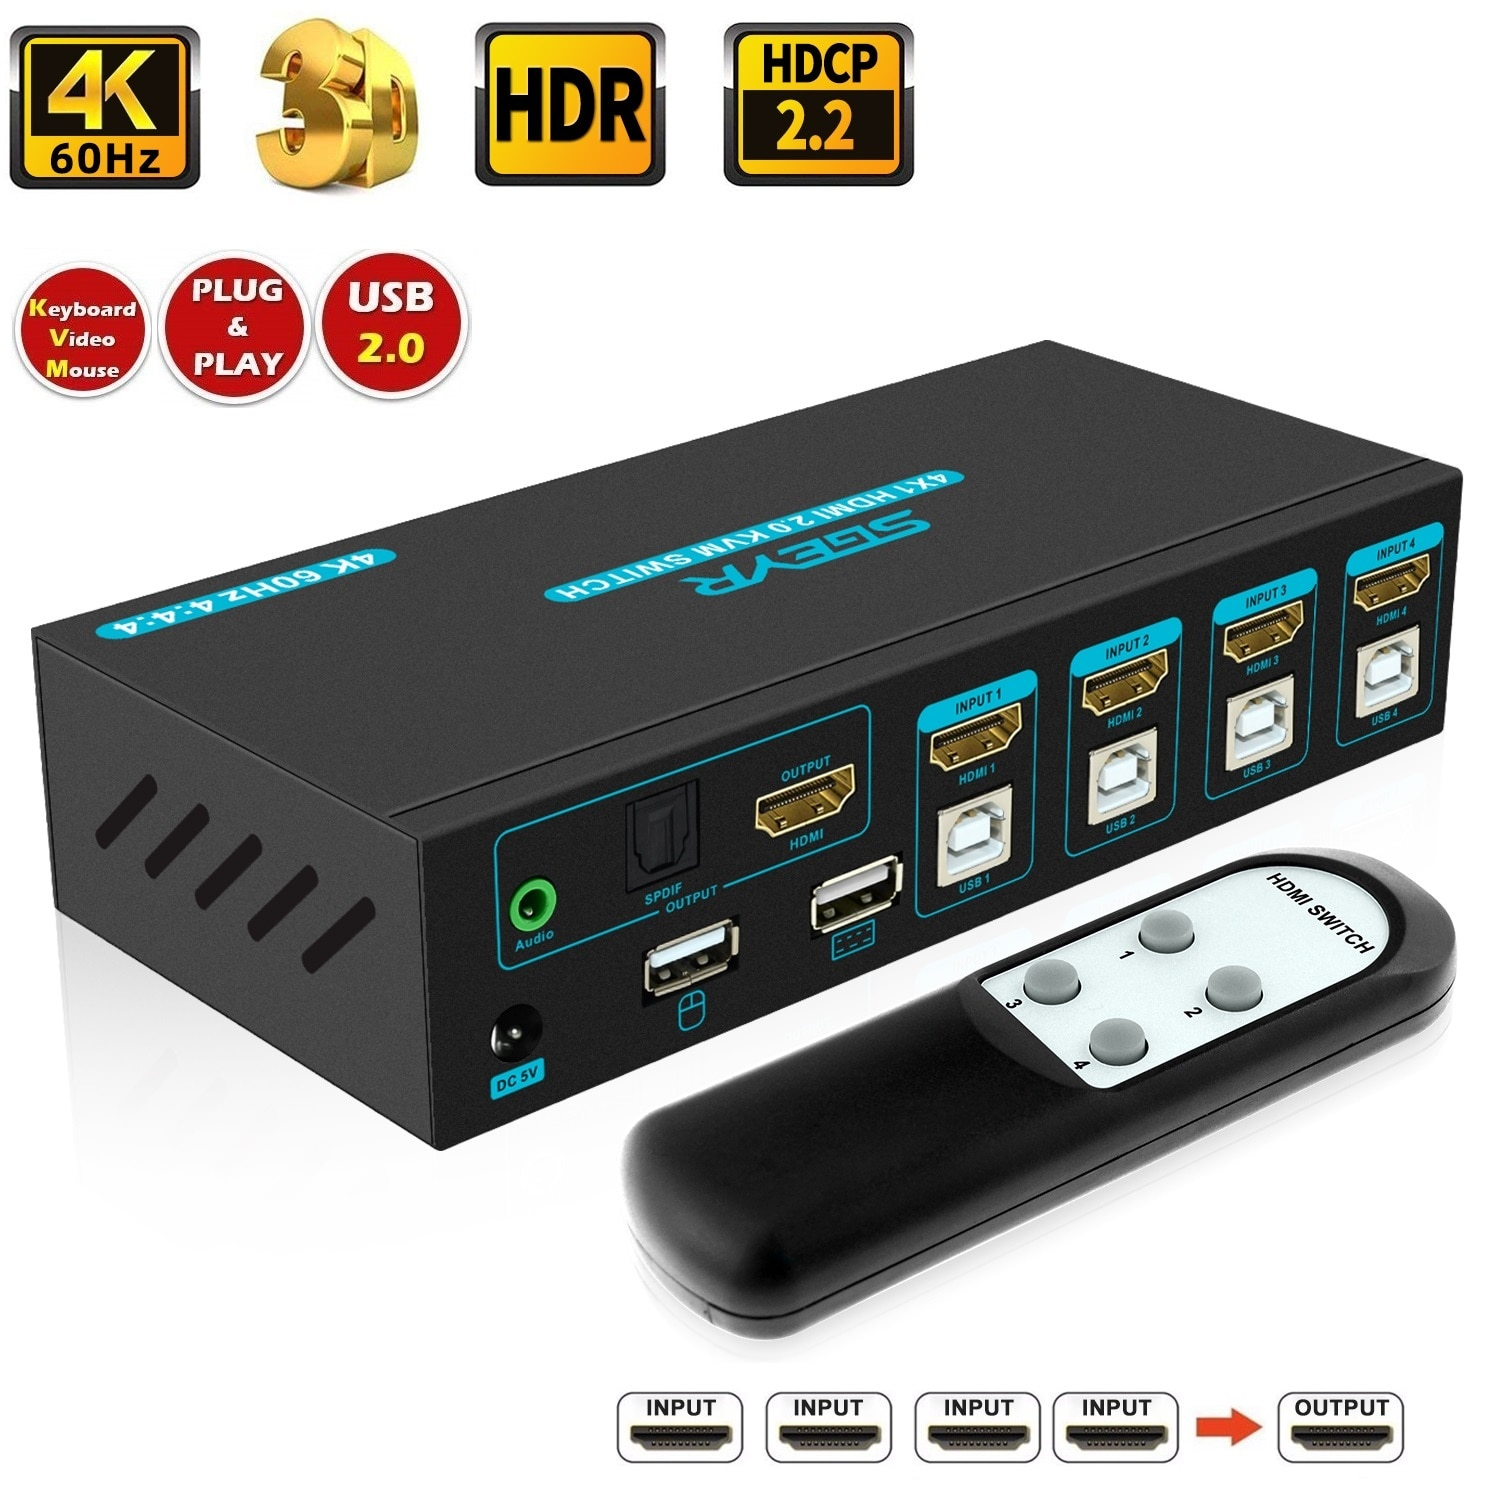 4 Port HDMI KVM Switch 4Kx2K@60Hz,SGEYR 4 In 1 Out USB KVM Switcher HDMI2.0,HDR HDCP2.2 Share 4 Computers with Keyboard Mouse